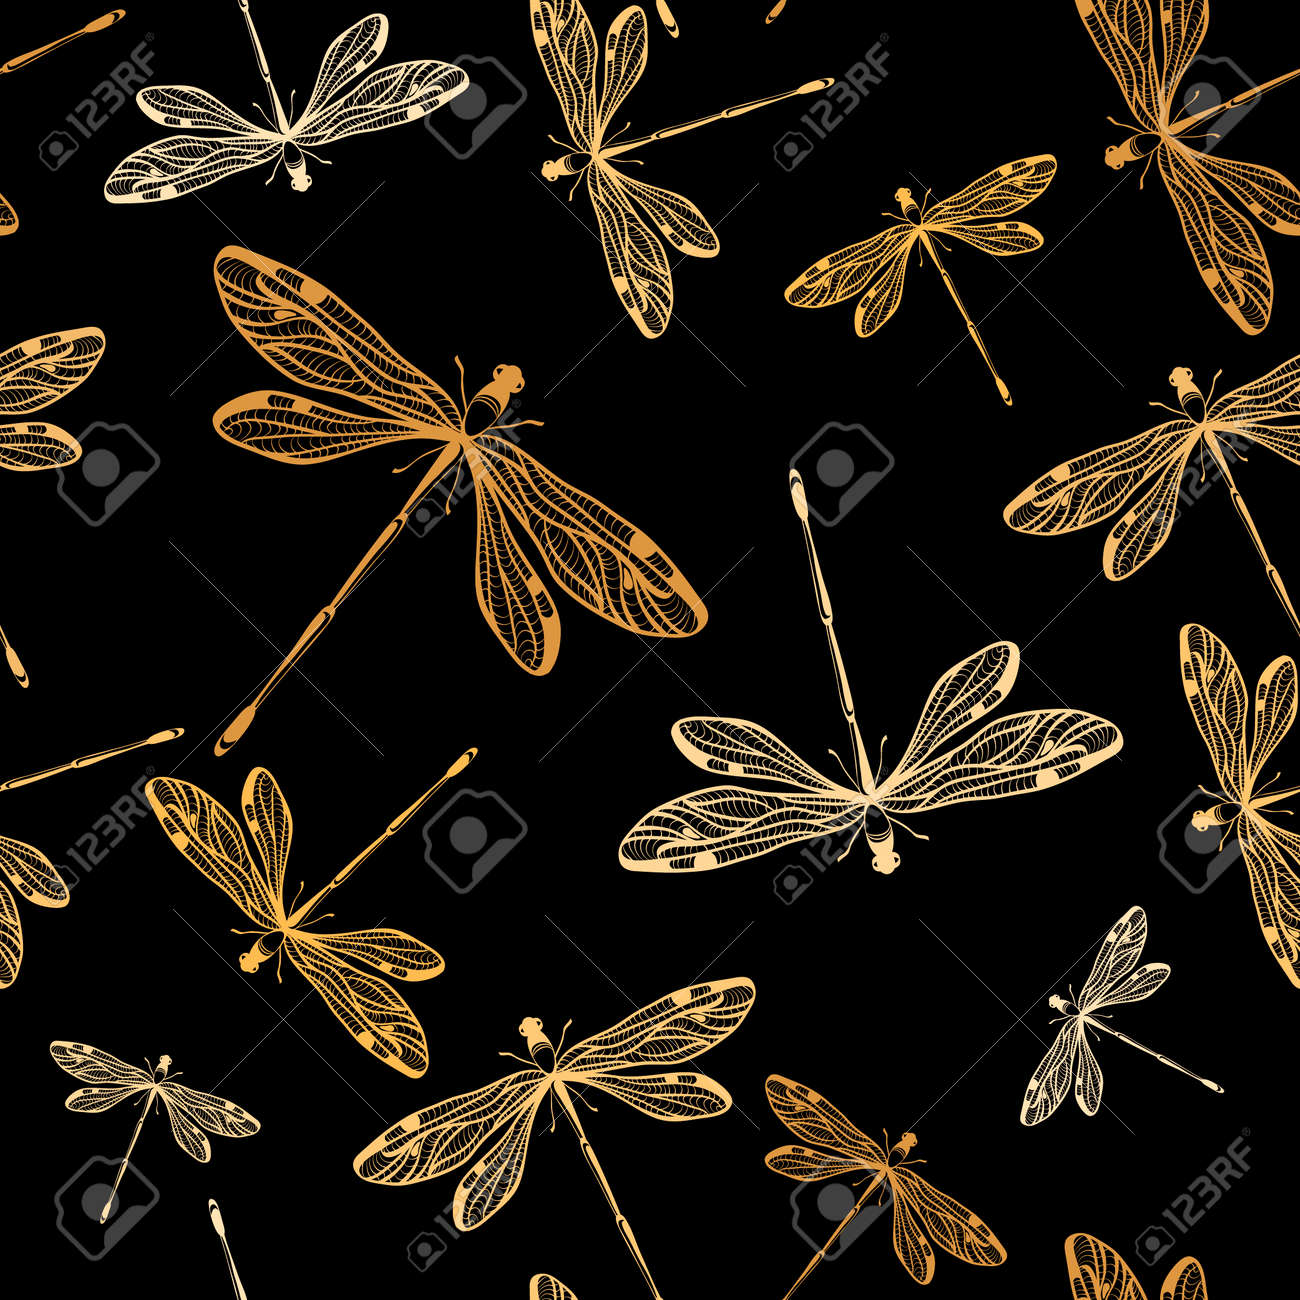 seamless pattern with dragonflies